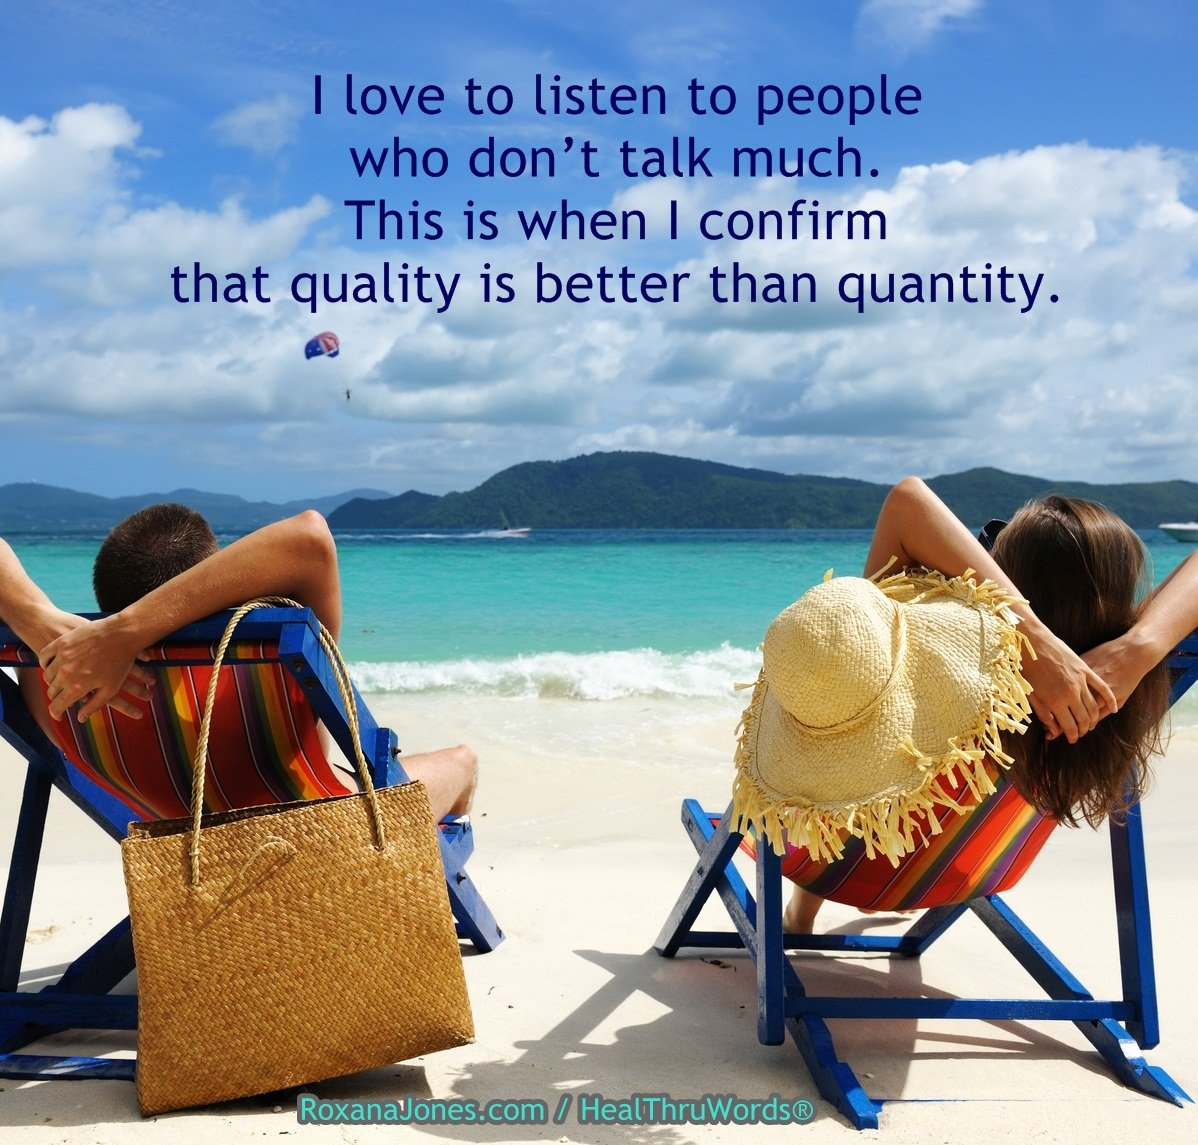 Inspirational Image: Listen to Quality